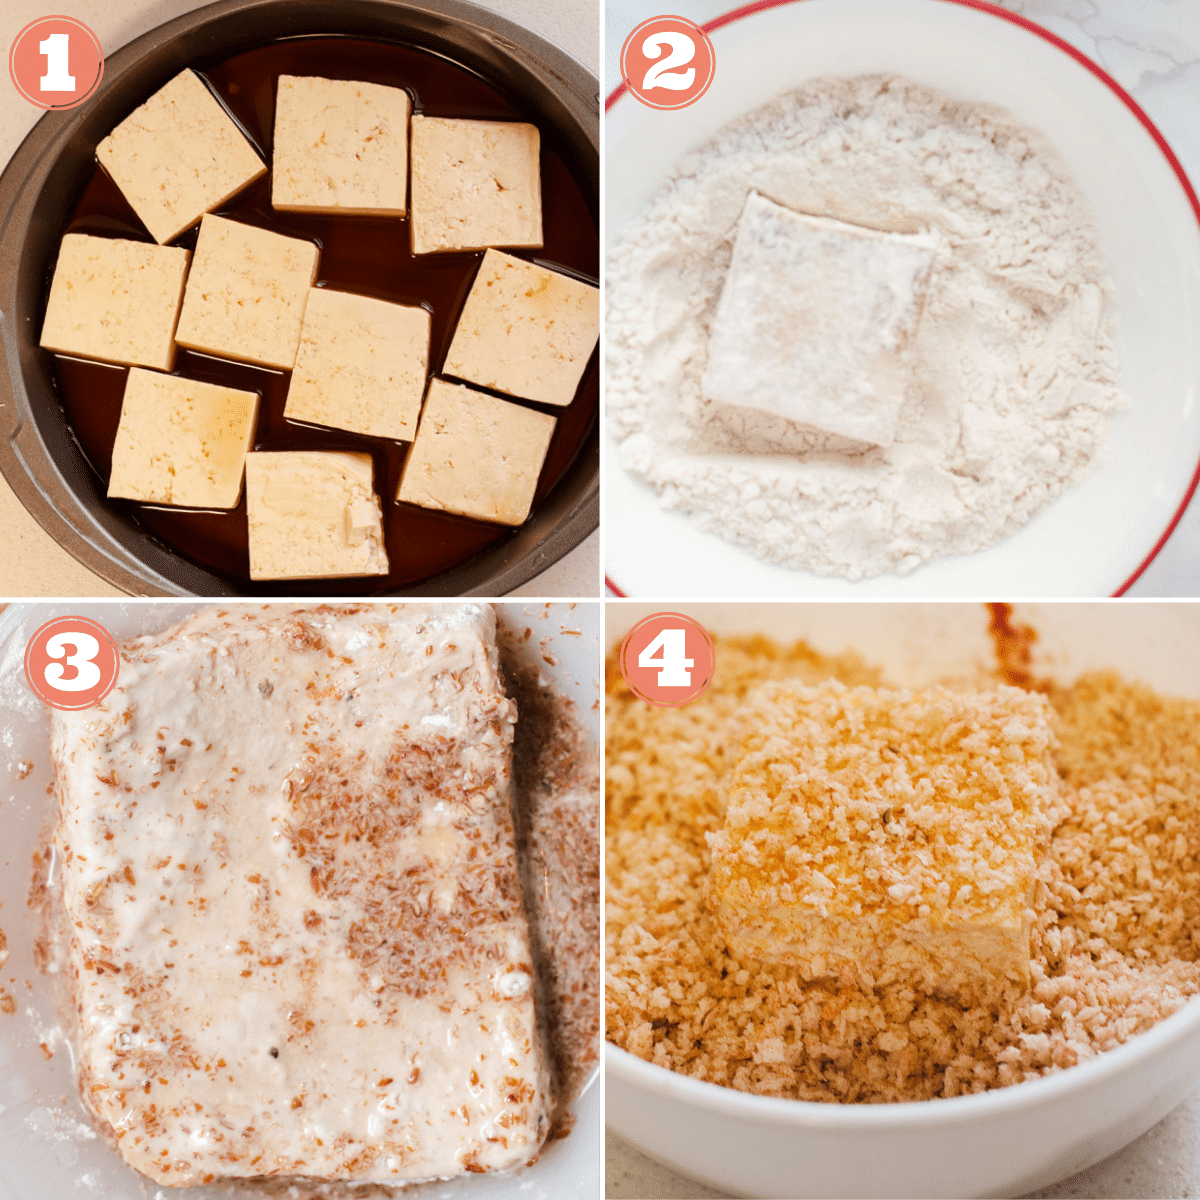 Steps 1 through 4 to make tofu nuggets